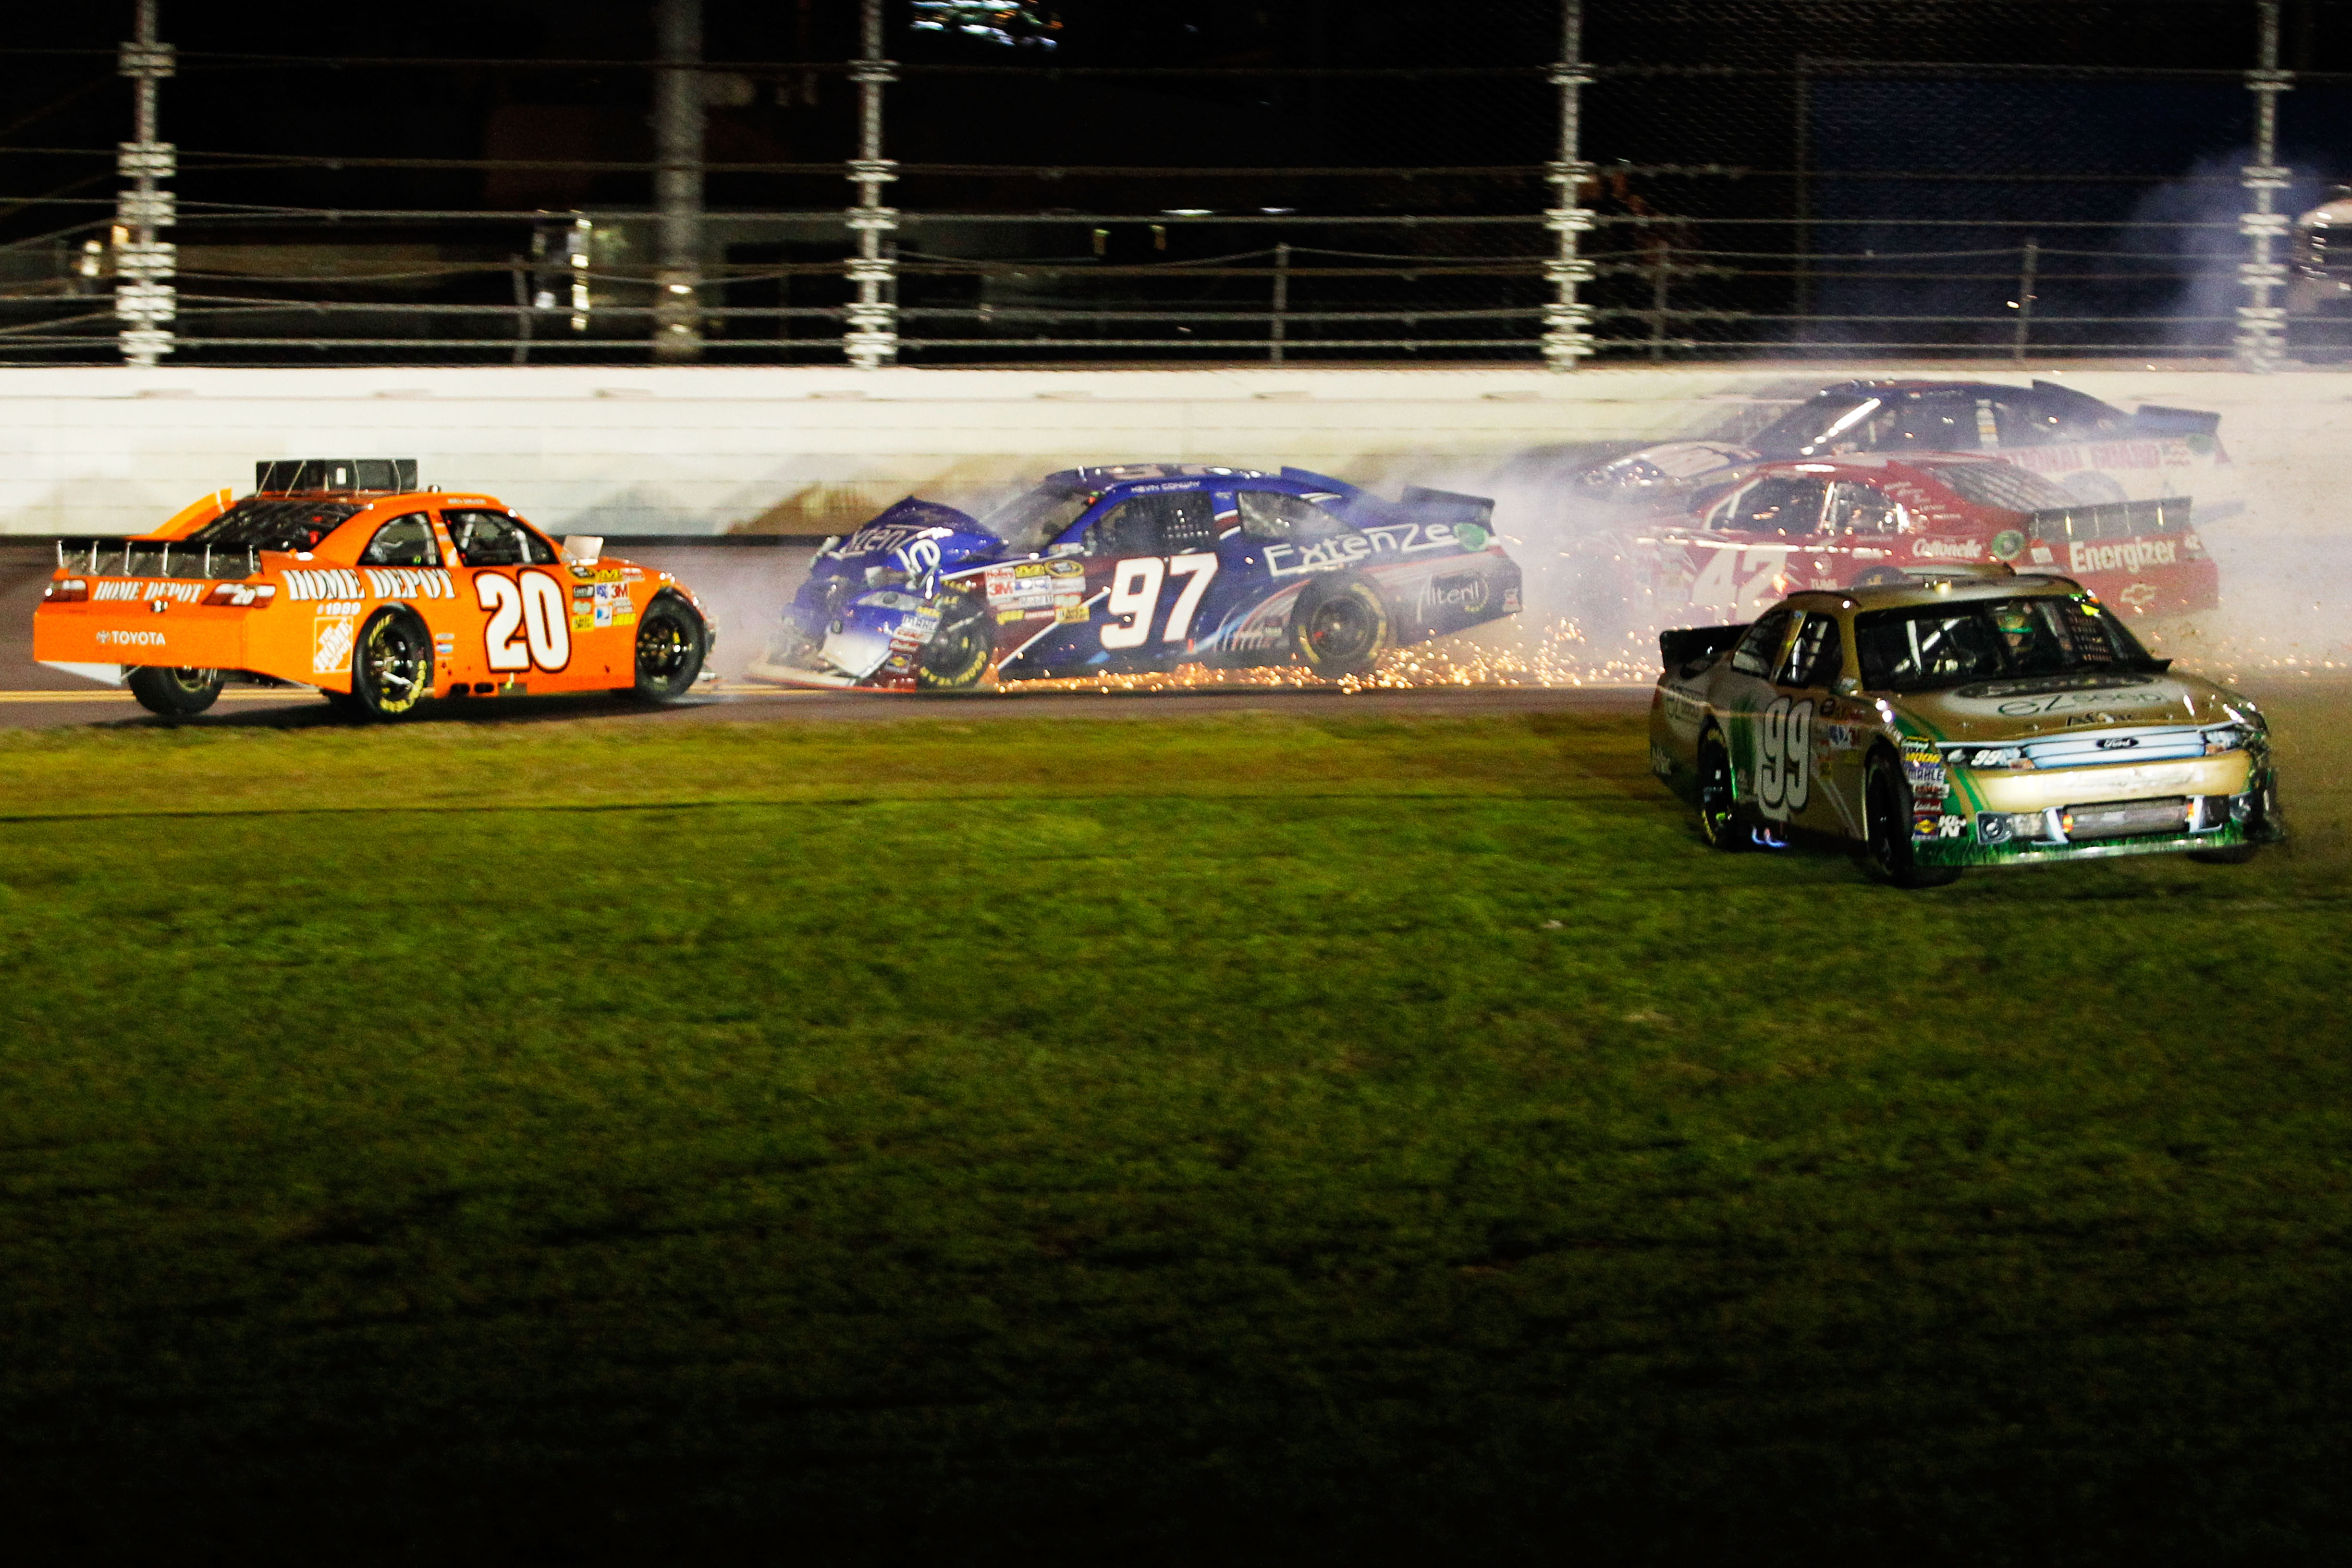 Montoya was caught up in the largest crash of the Bud Shootout Saturday night.